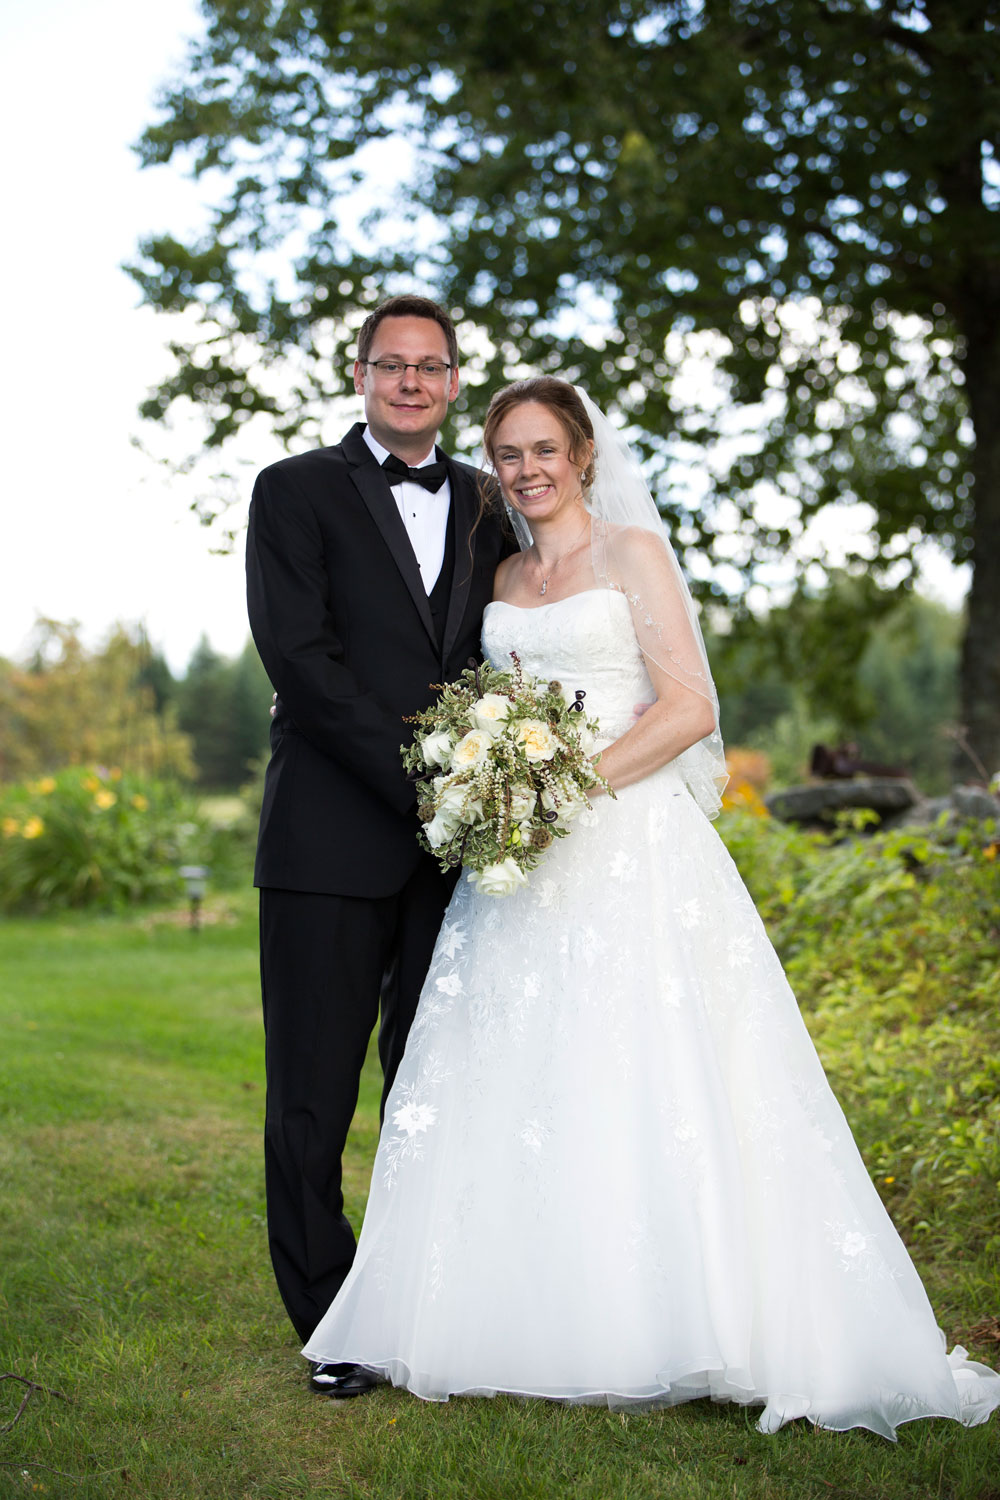 web_Sarah-Brian-8-22-15-Bride-Groom-0018.jpg